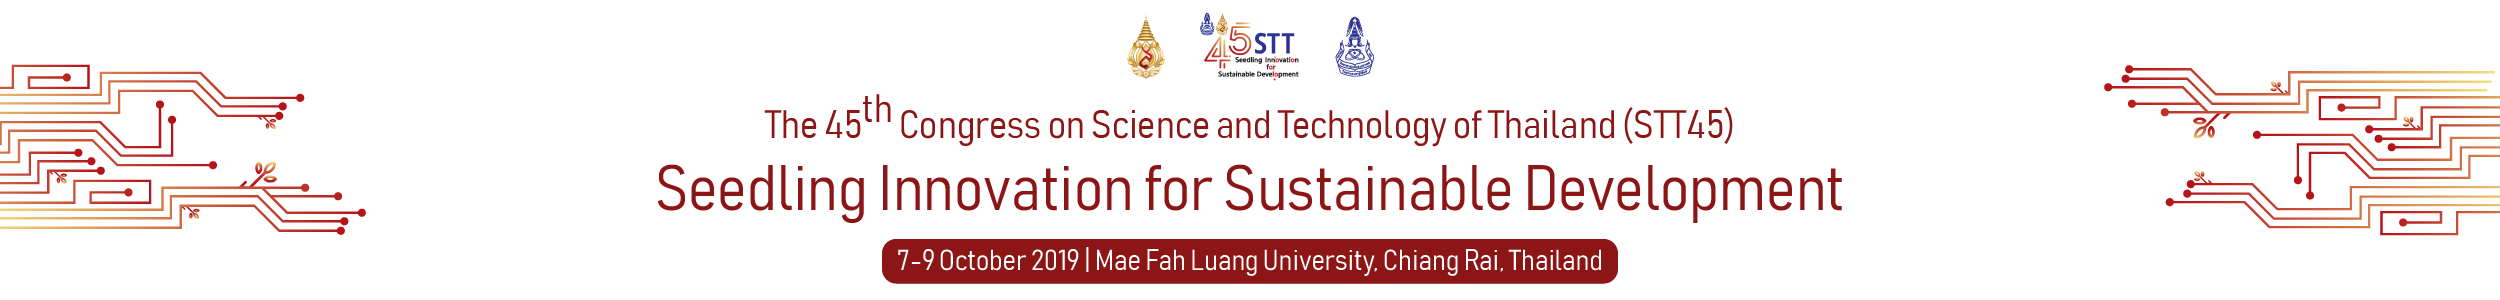 The 45th Congress on Science and Technology of Thailand (STT45)